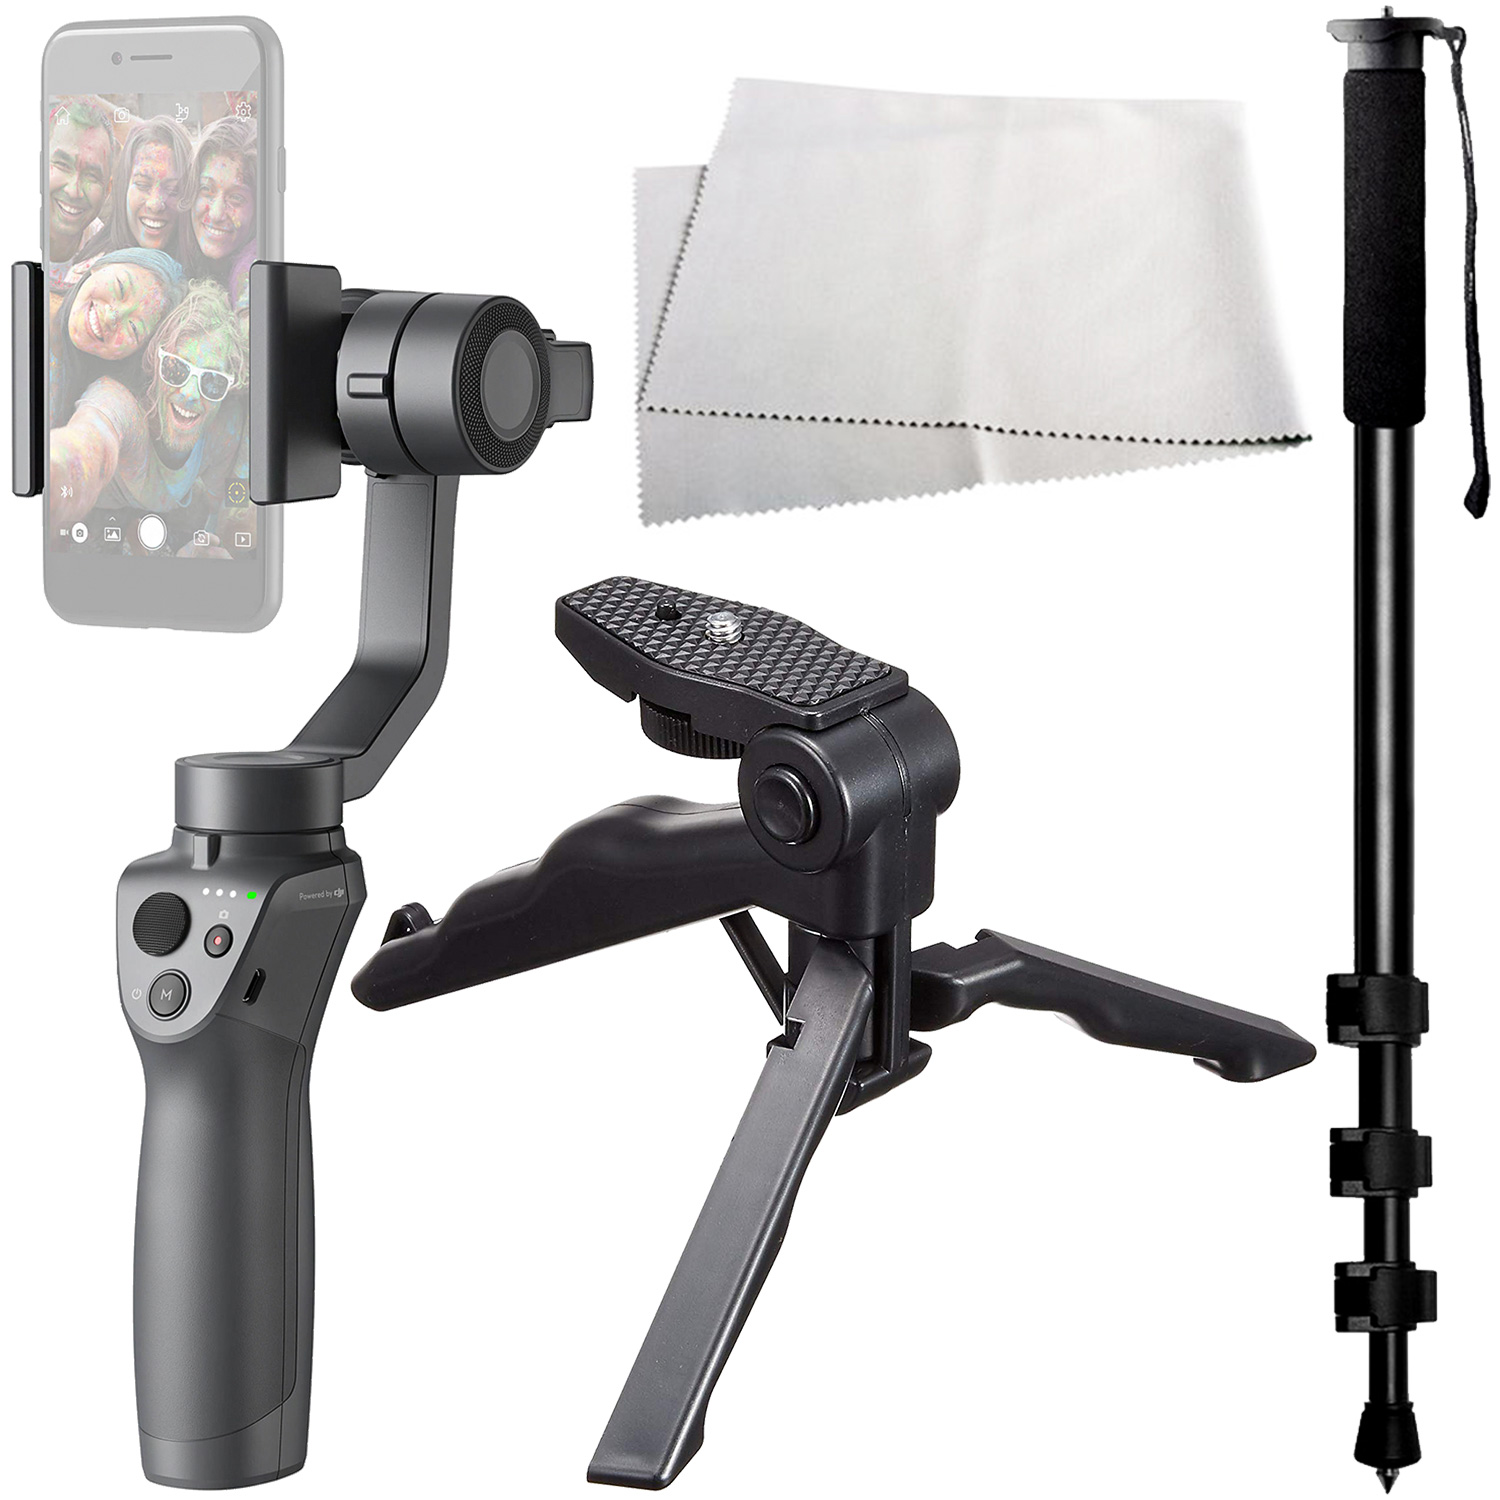 DJI Osmo Mobile 2 Bundle